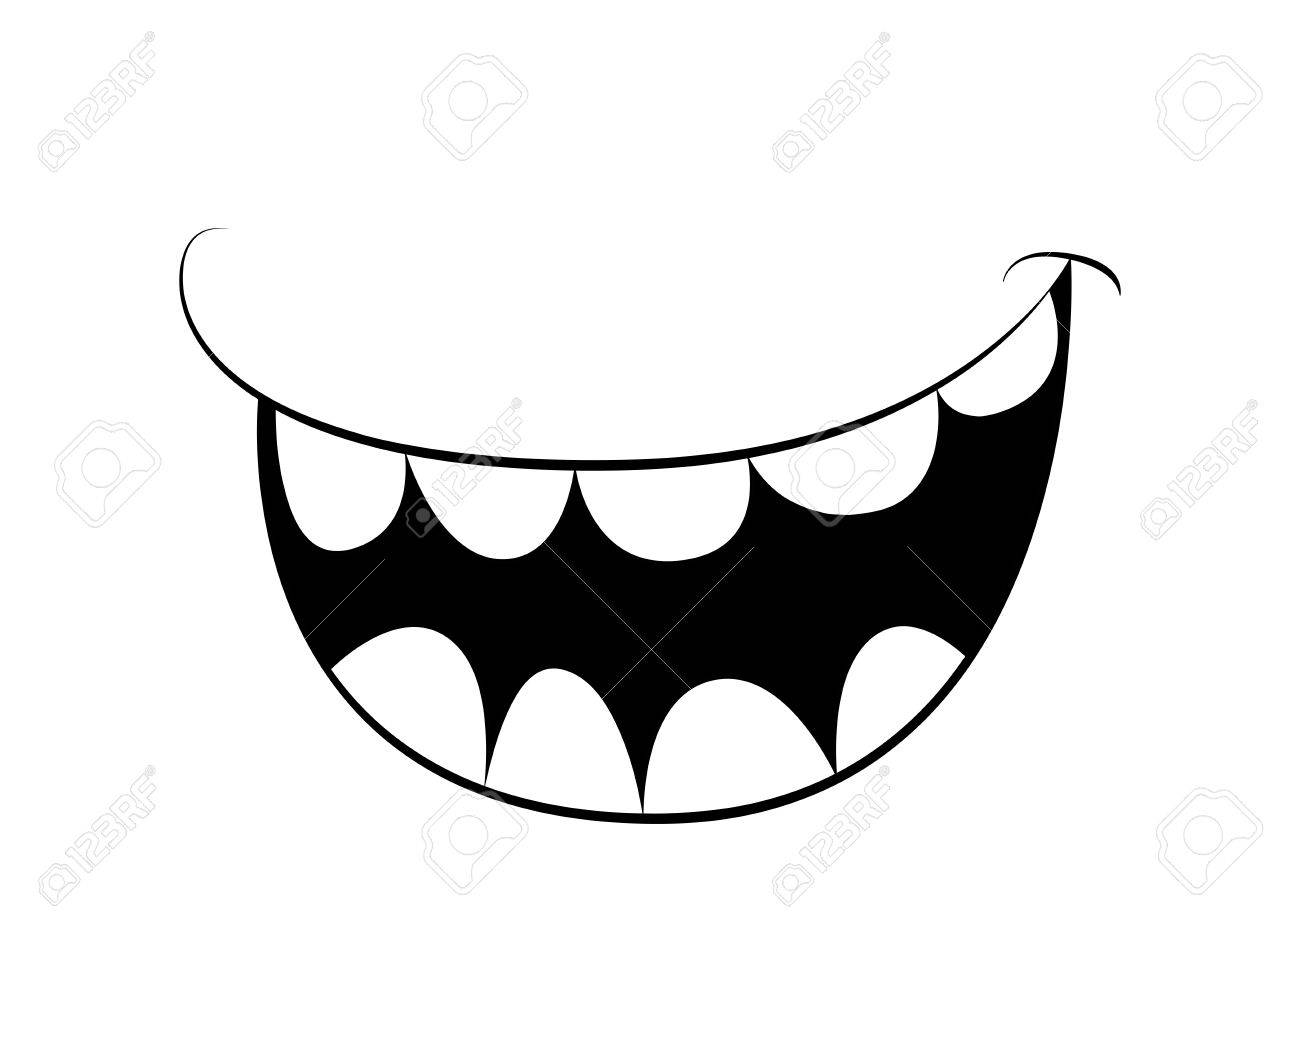 cartoon smile mouth lips with teeth vector silhouette outline rh 123rf com mouth vector icon mouth vector man